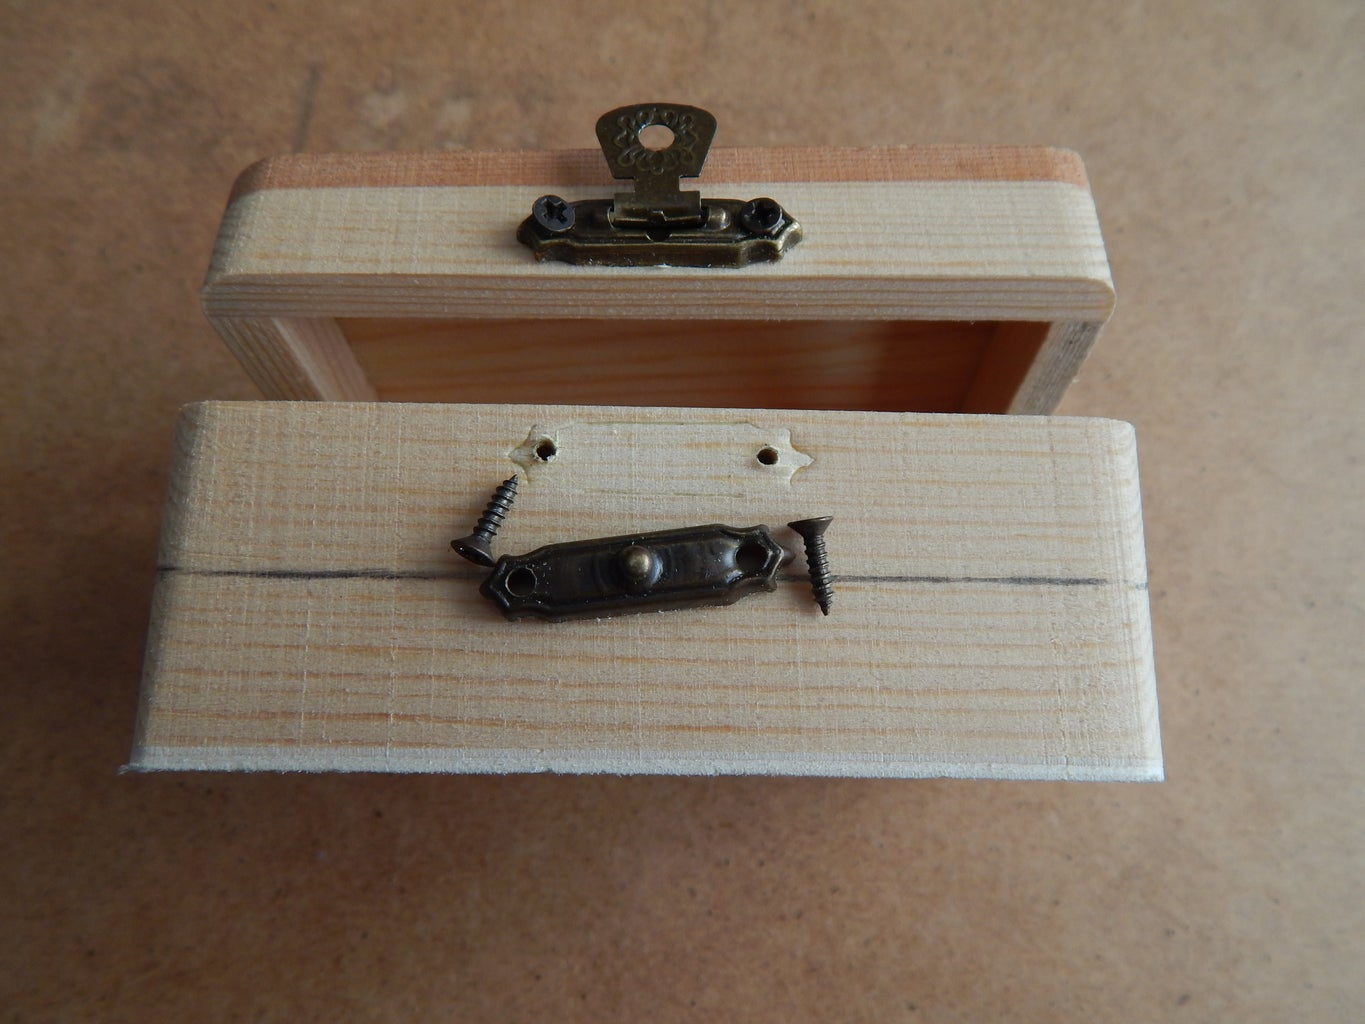 Removing Hinges and Latch